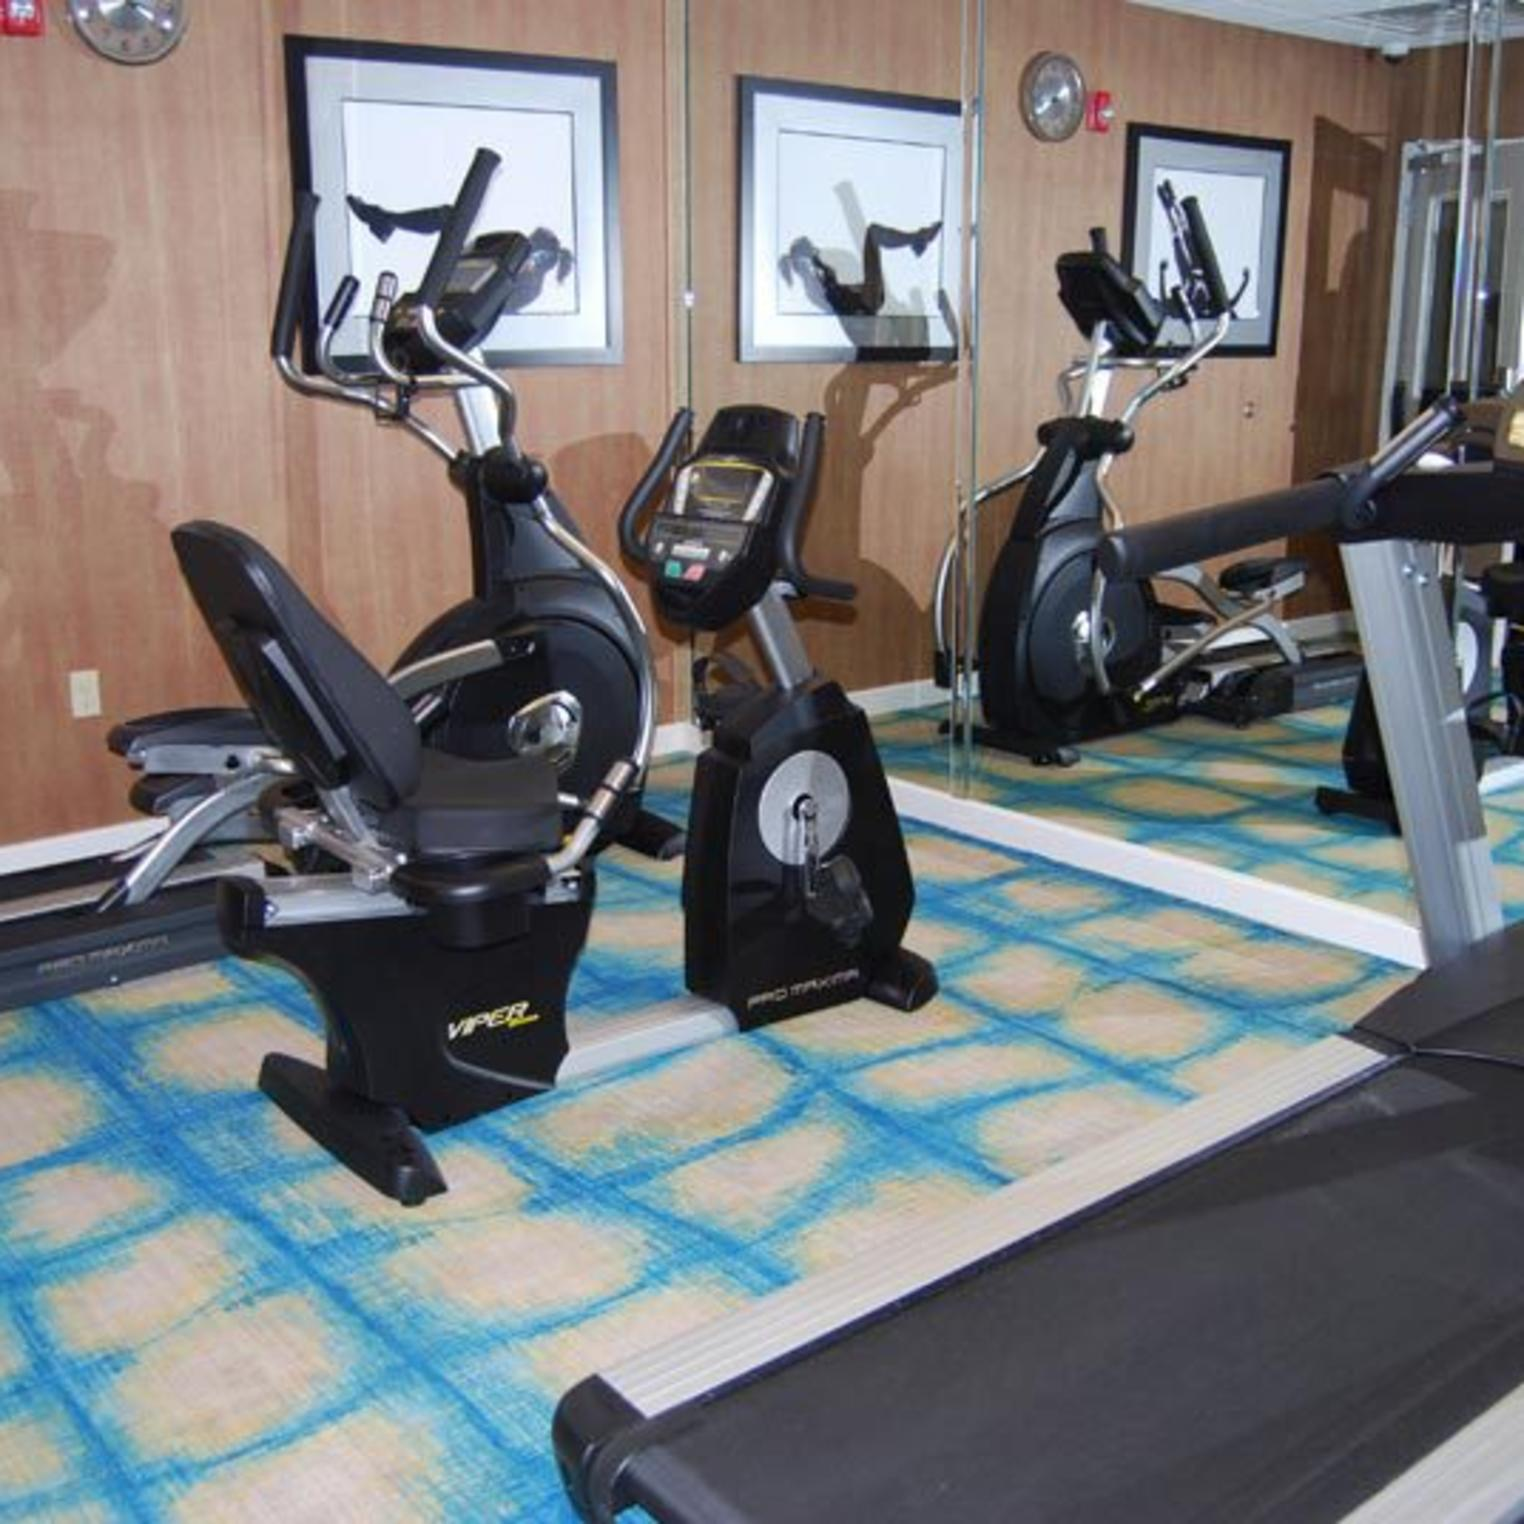 Holiday Inn Express and Suites Carlisle Fitness Center